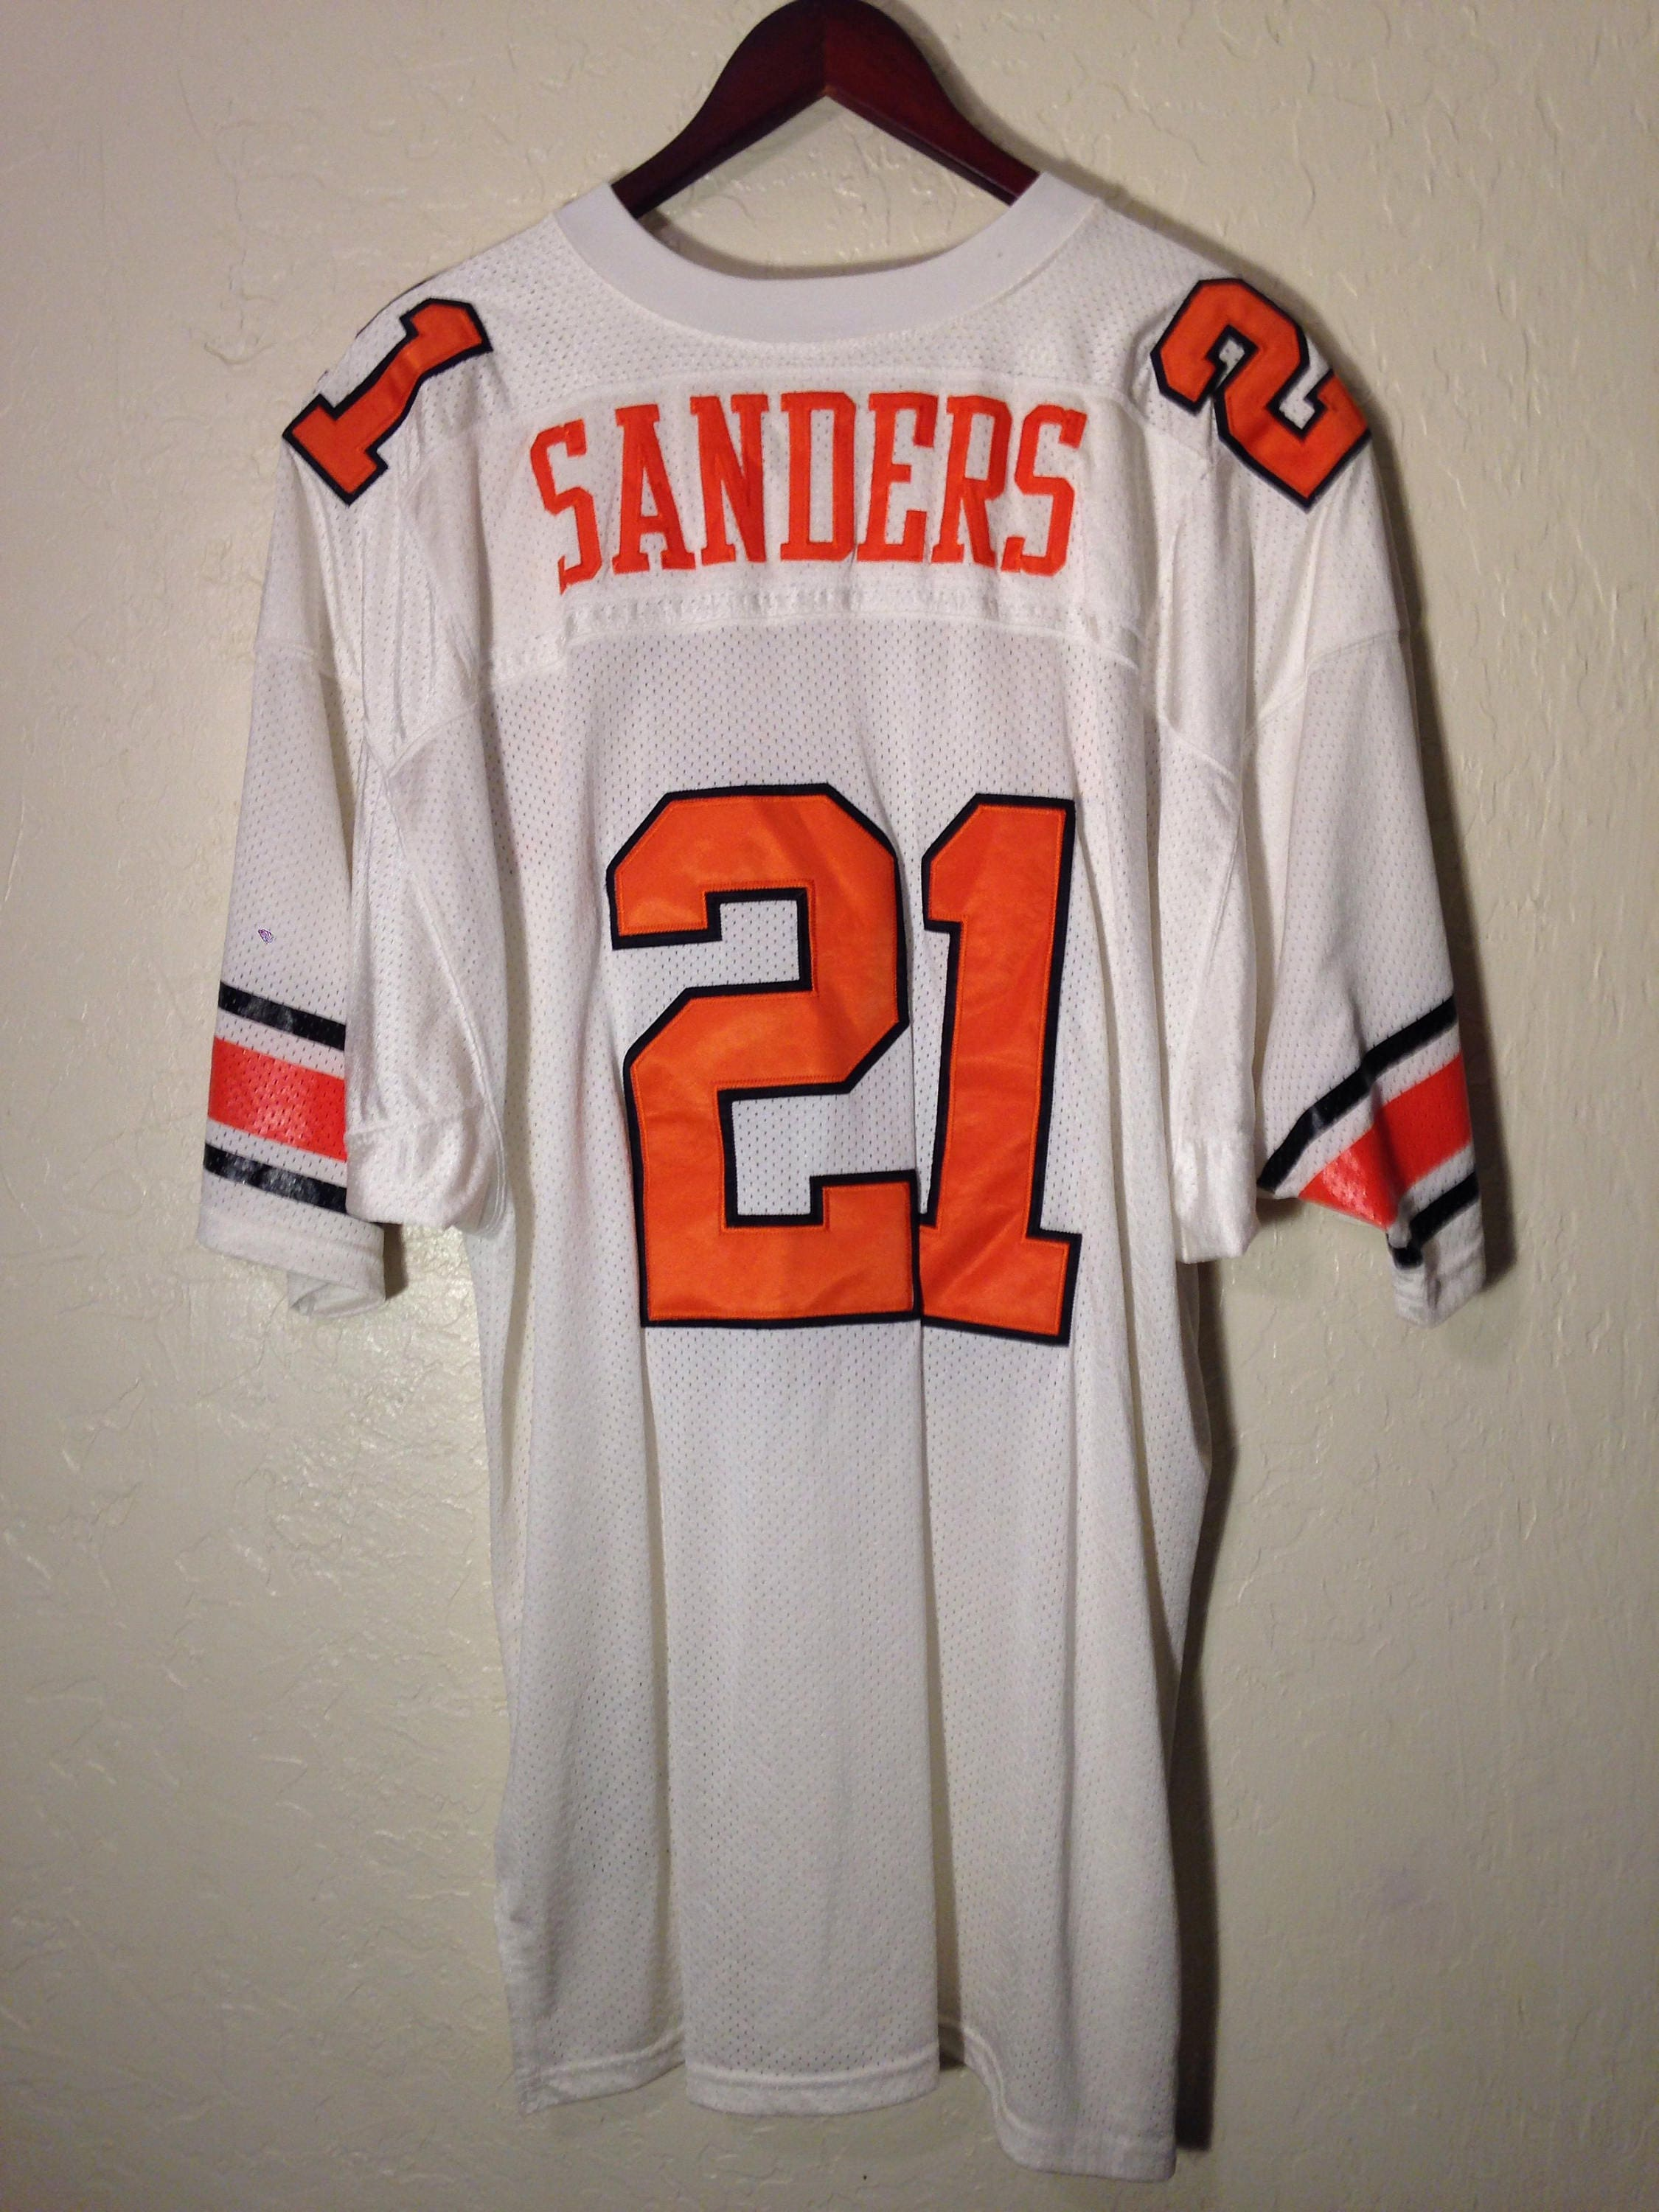 purchase cheap 9061a 3a689 90s Vintage Oklahoma State, Barry sanders, Jersey, football ...